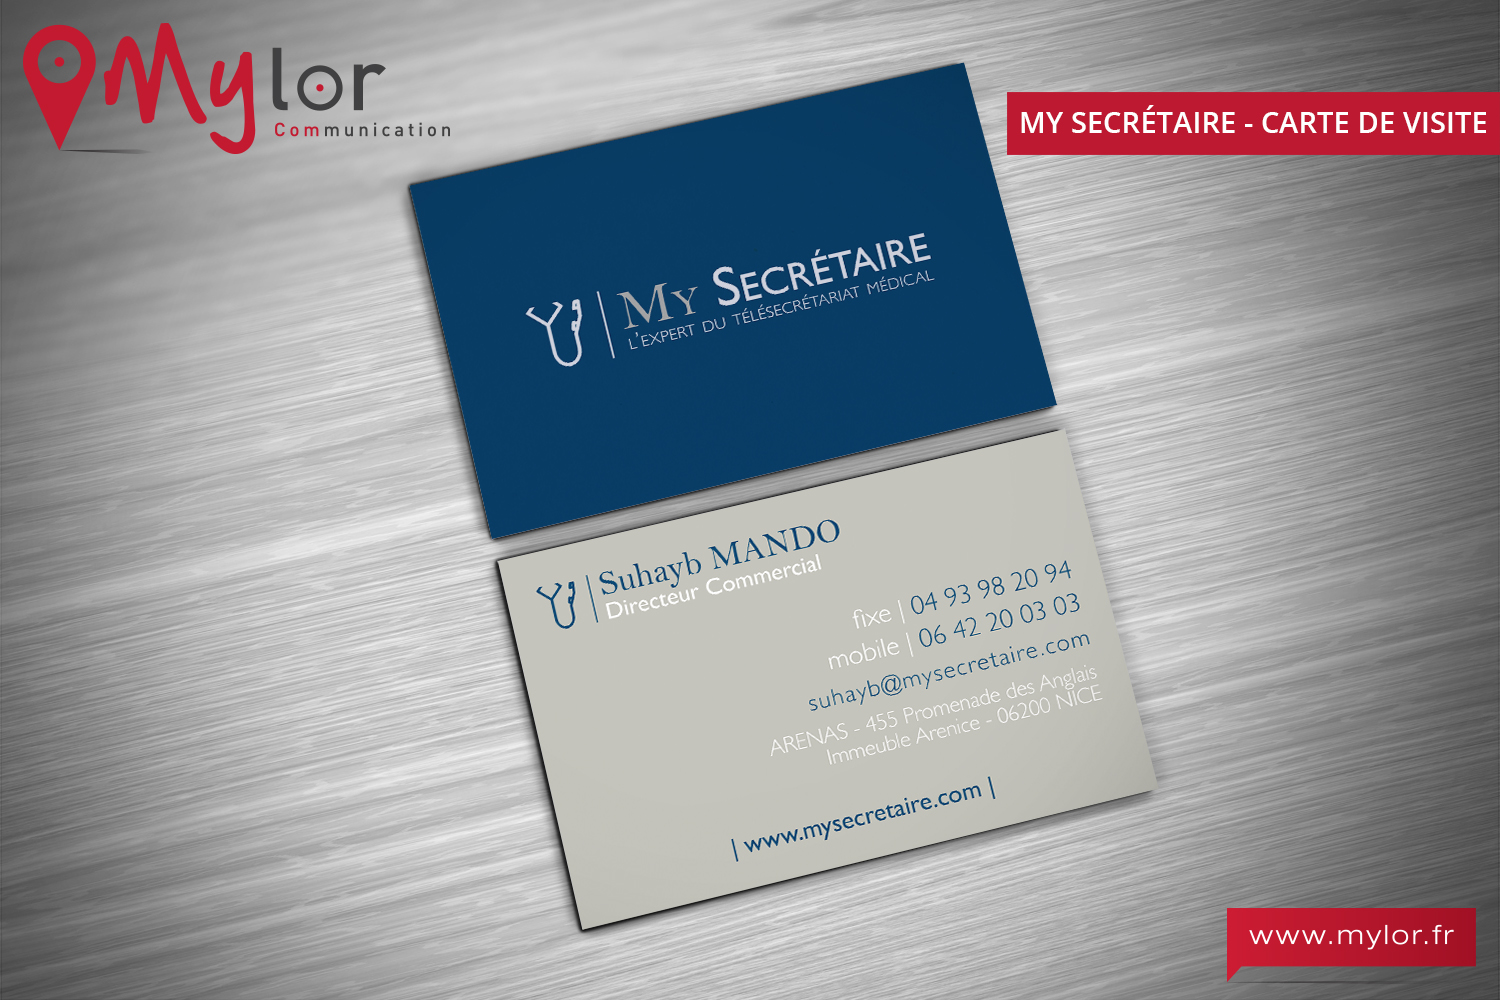 Cartes De Visite My Secretaire